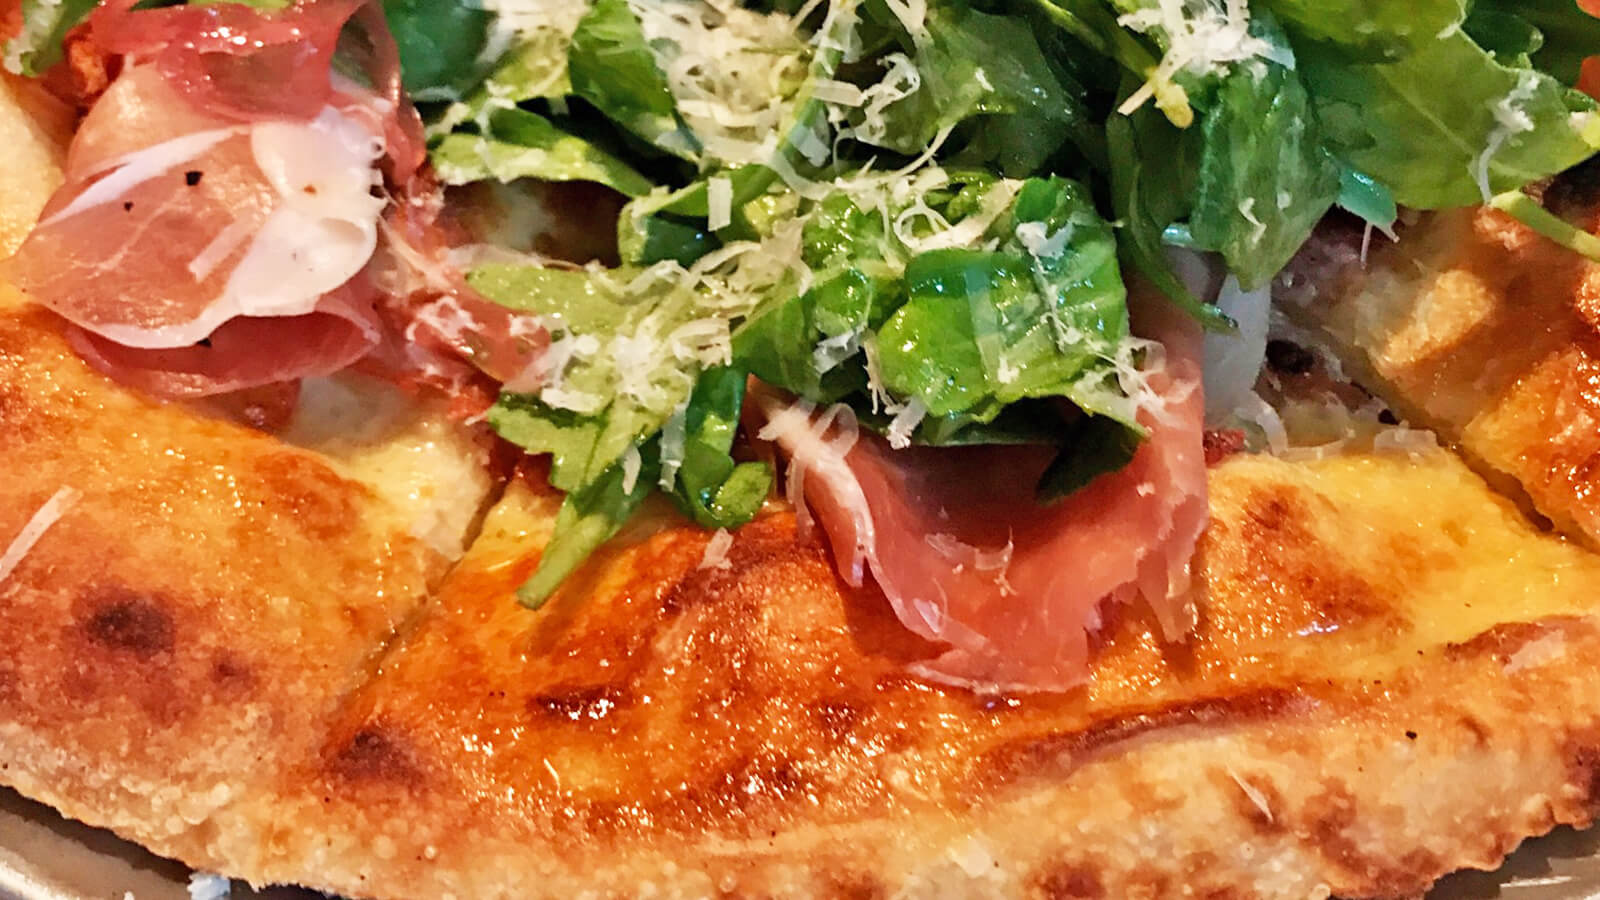 Tuesday, August 6 is Pizza Night in Beaufort